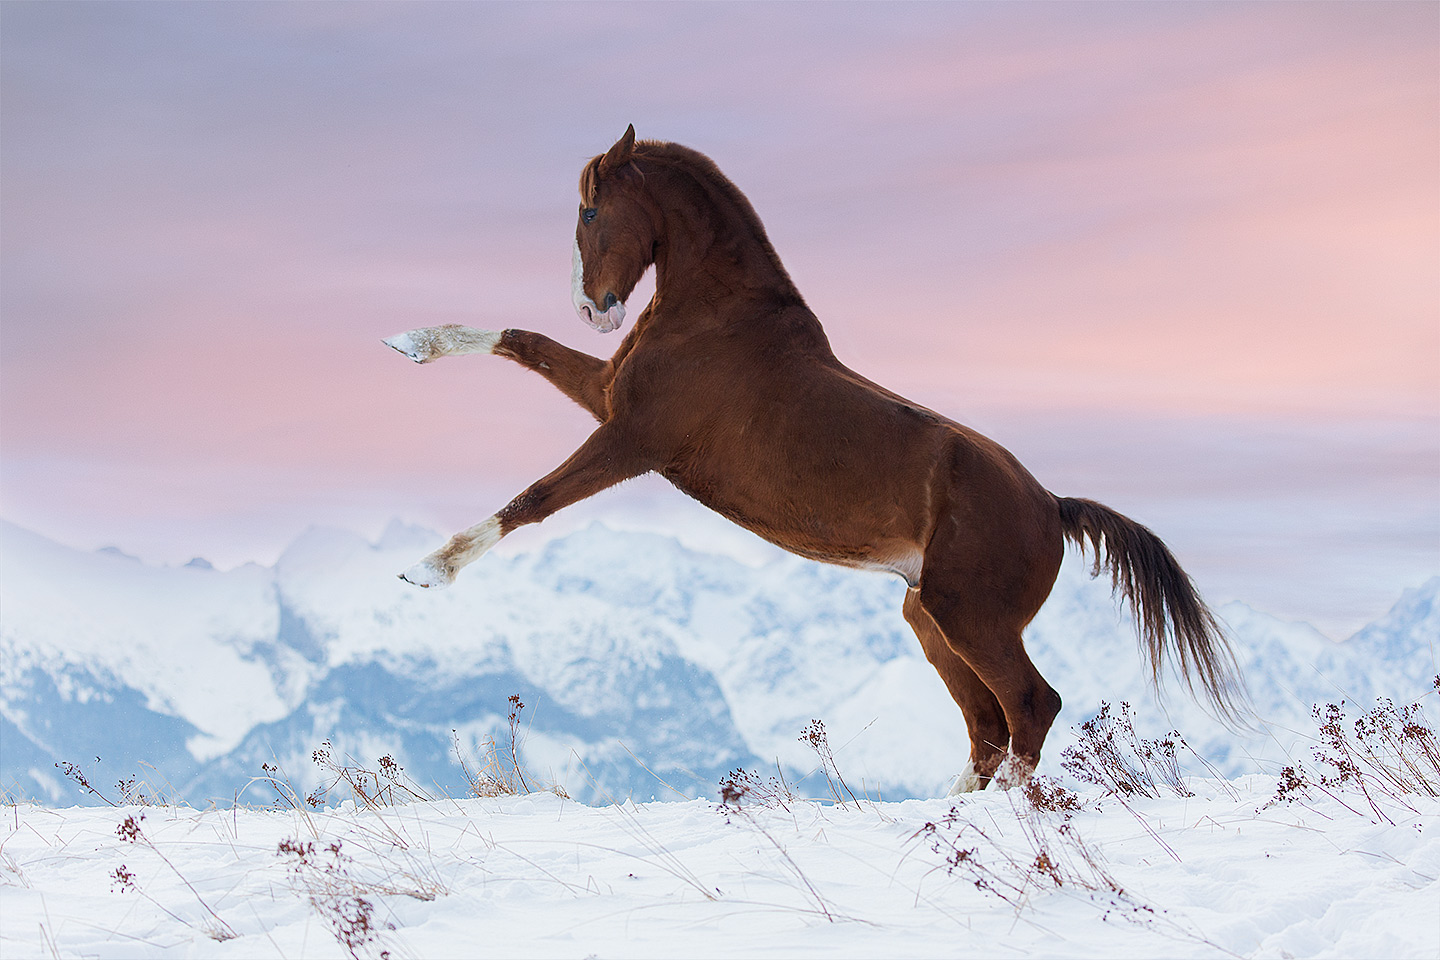 Chesnut KWPN gelding rearing against Tatra mountains at sunrise